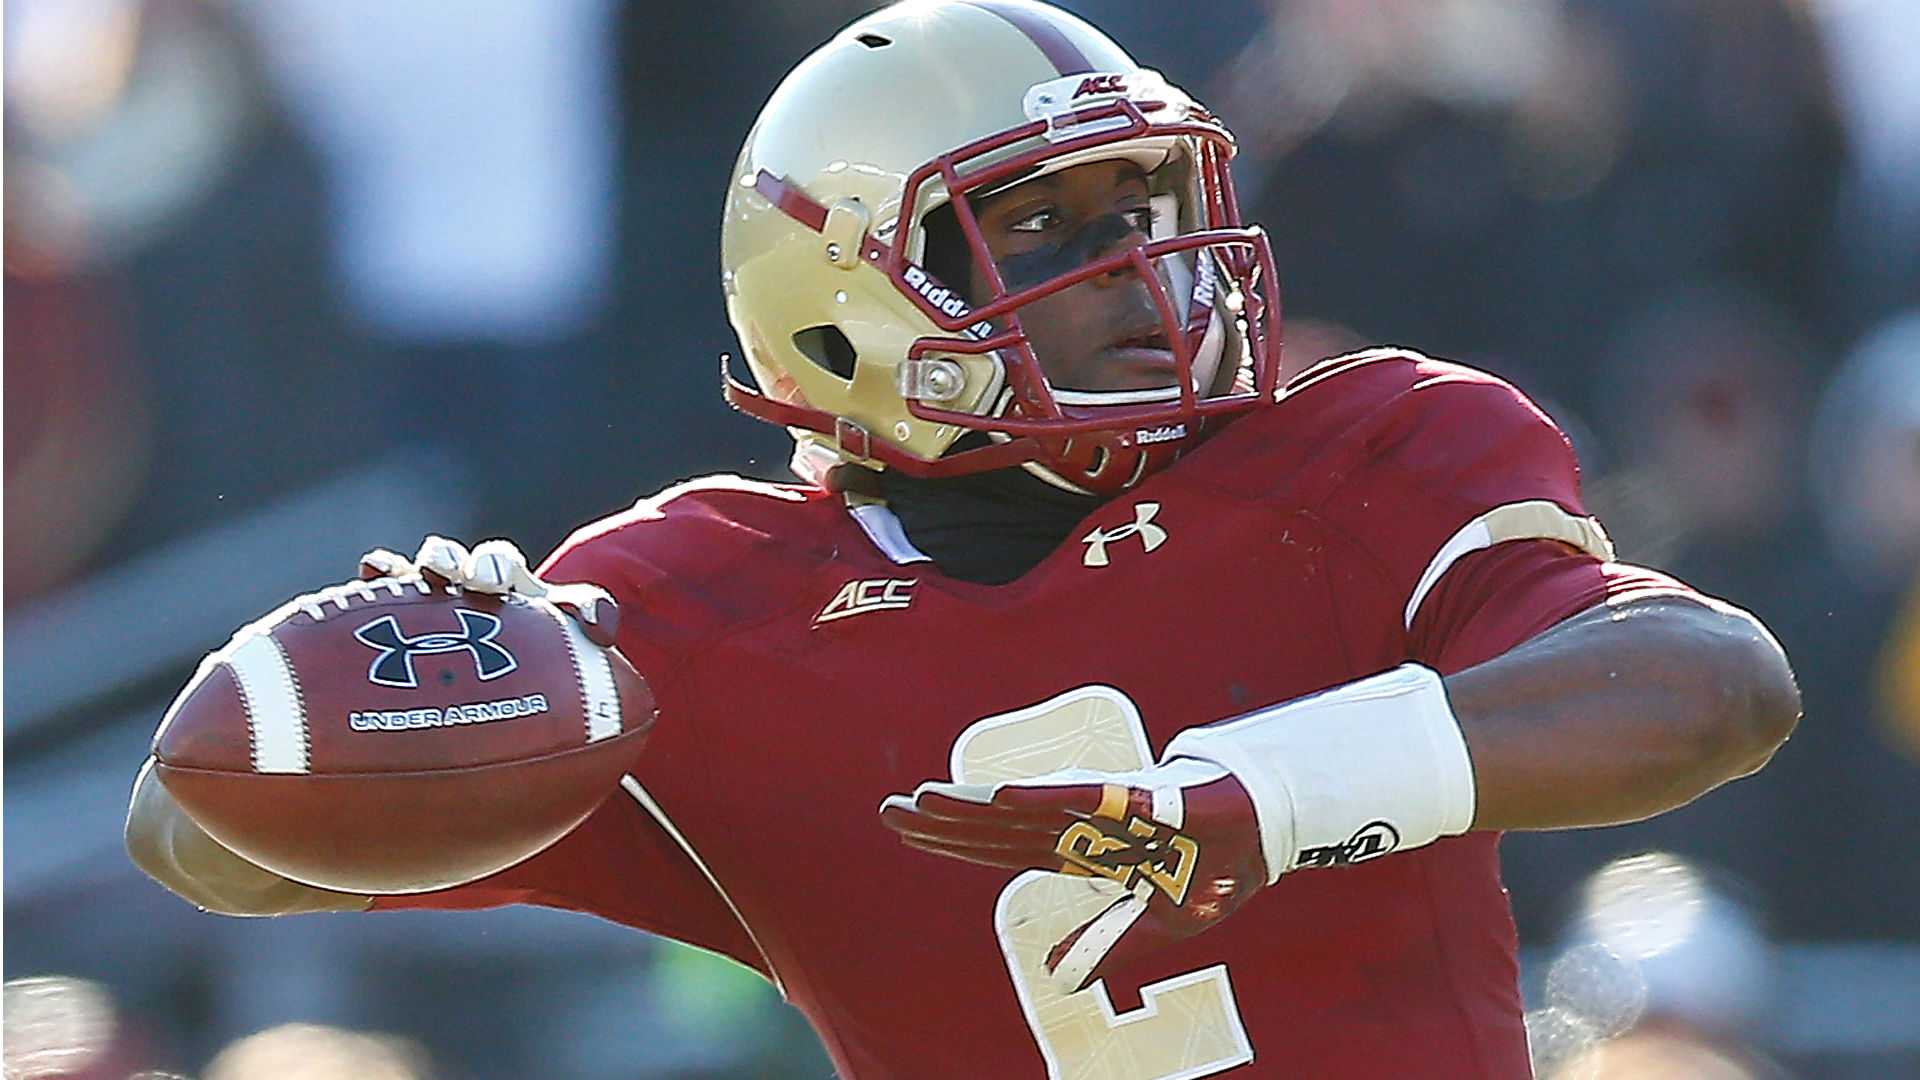 Penn State vs. Boston College betting lines and pick – Eagles favored in Pinstripe Bowl